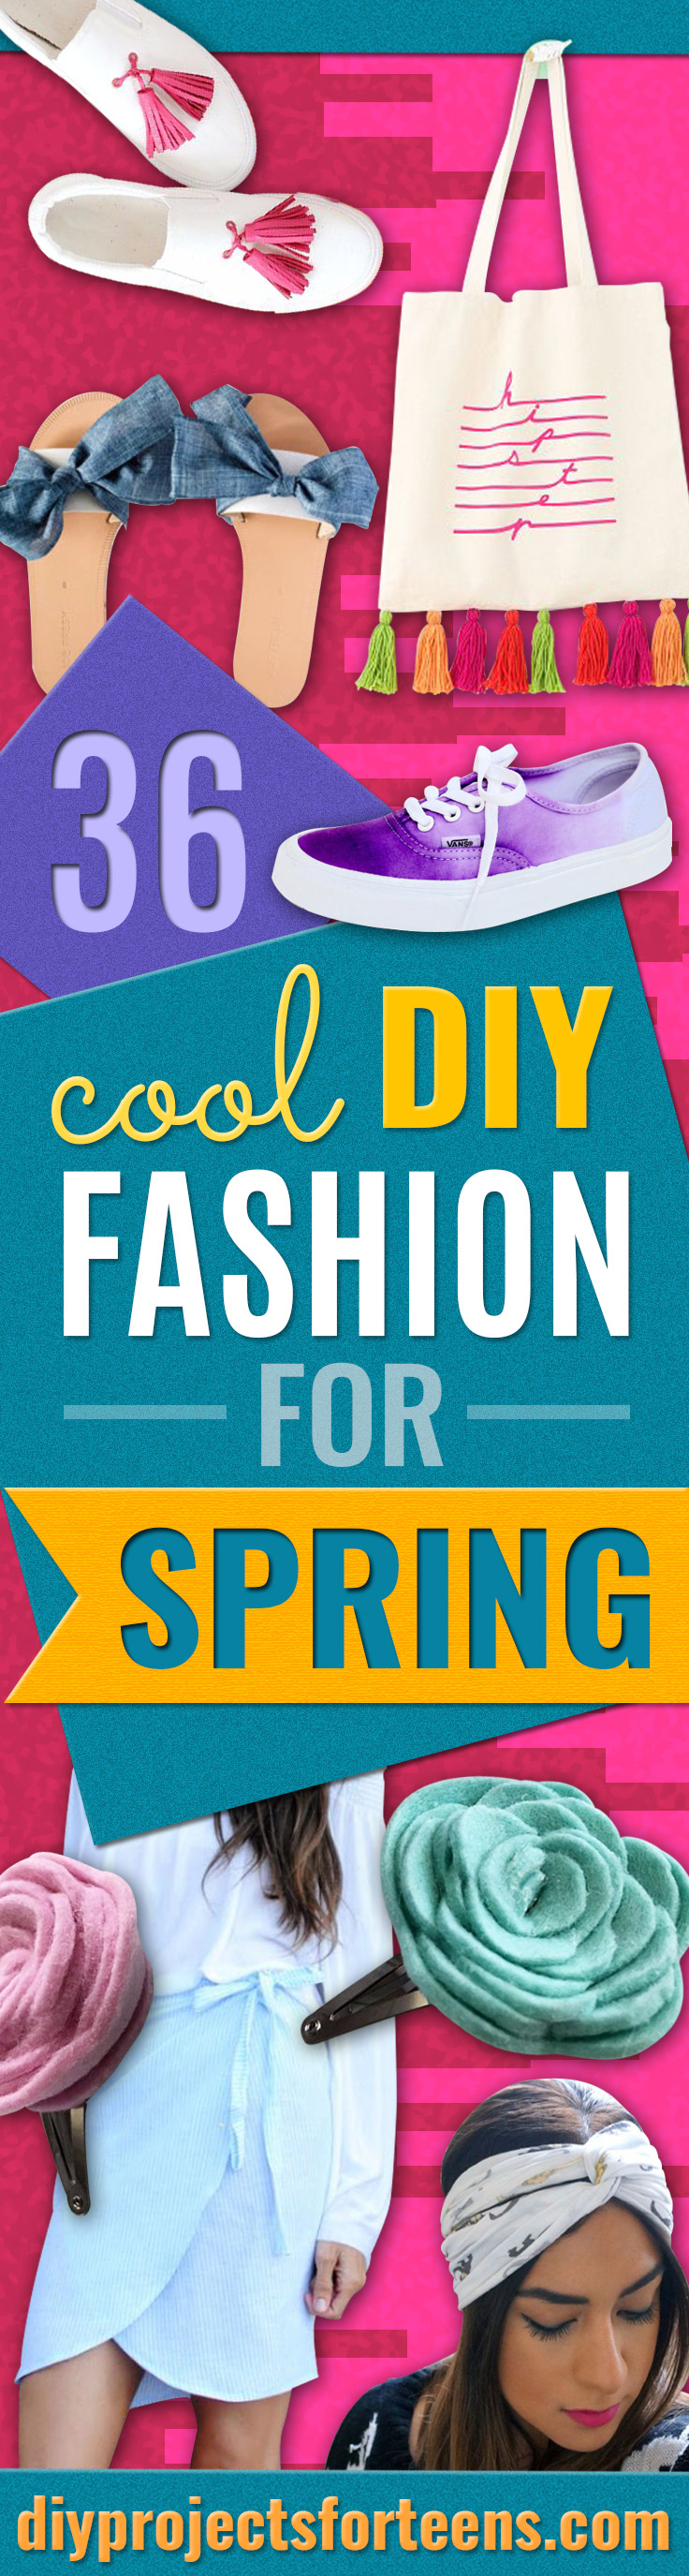 DIY Teen Fashion for Spring - Easy Homemade Clothing Tutorials and Things To Make To Wear - Cute Patterns and Projects for Teens to Make, T-Shirts, Skirts, Dresses, Shorts and Ideas for Jeans - Tops, Tanks and Tees With Free Tutorial Ideas and Instructions http://diyprojectsforteens.com/teen-fashion-spring